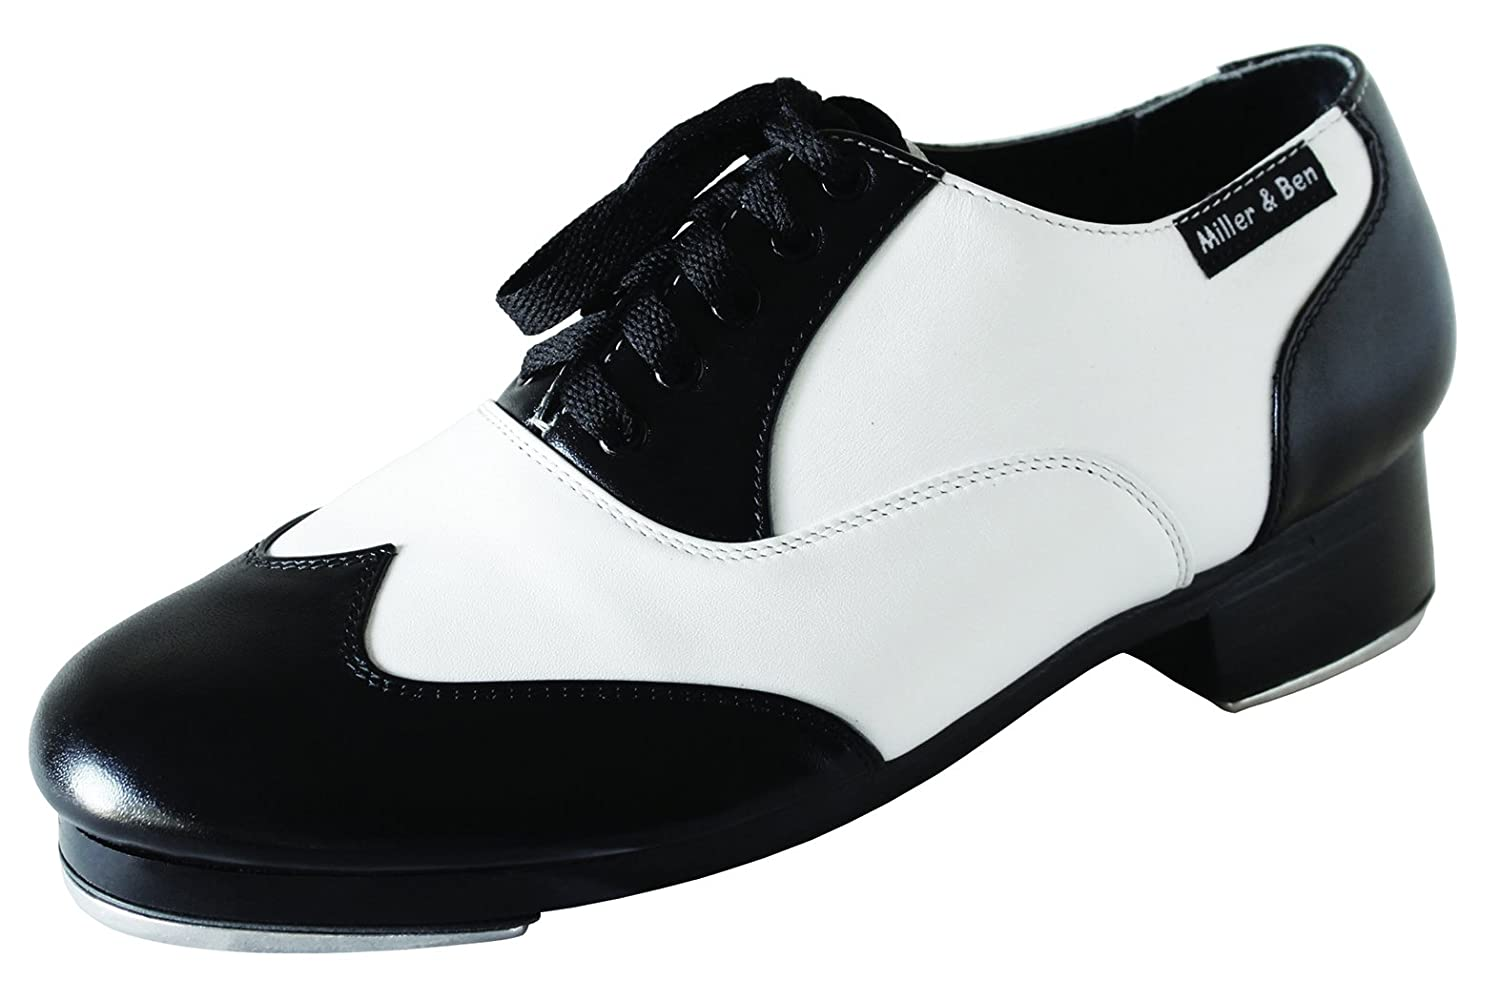 DIY Dance Shoes- Ballroom, Lindy, Swing Miller & Ben Tap Shoes Jazz-Tap Master Black & White - STANDARD SIZES $285.00 AT vintagedancer.com